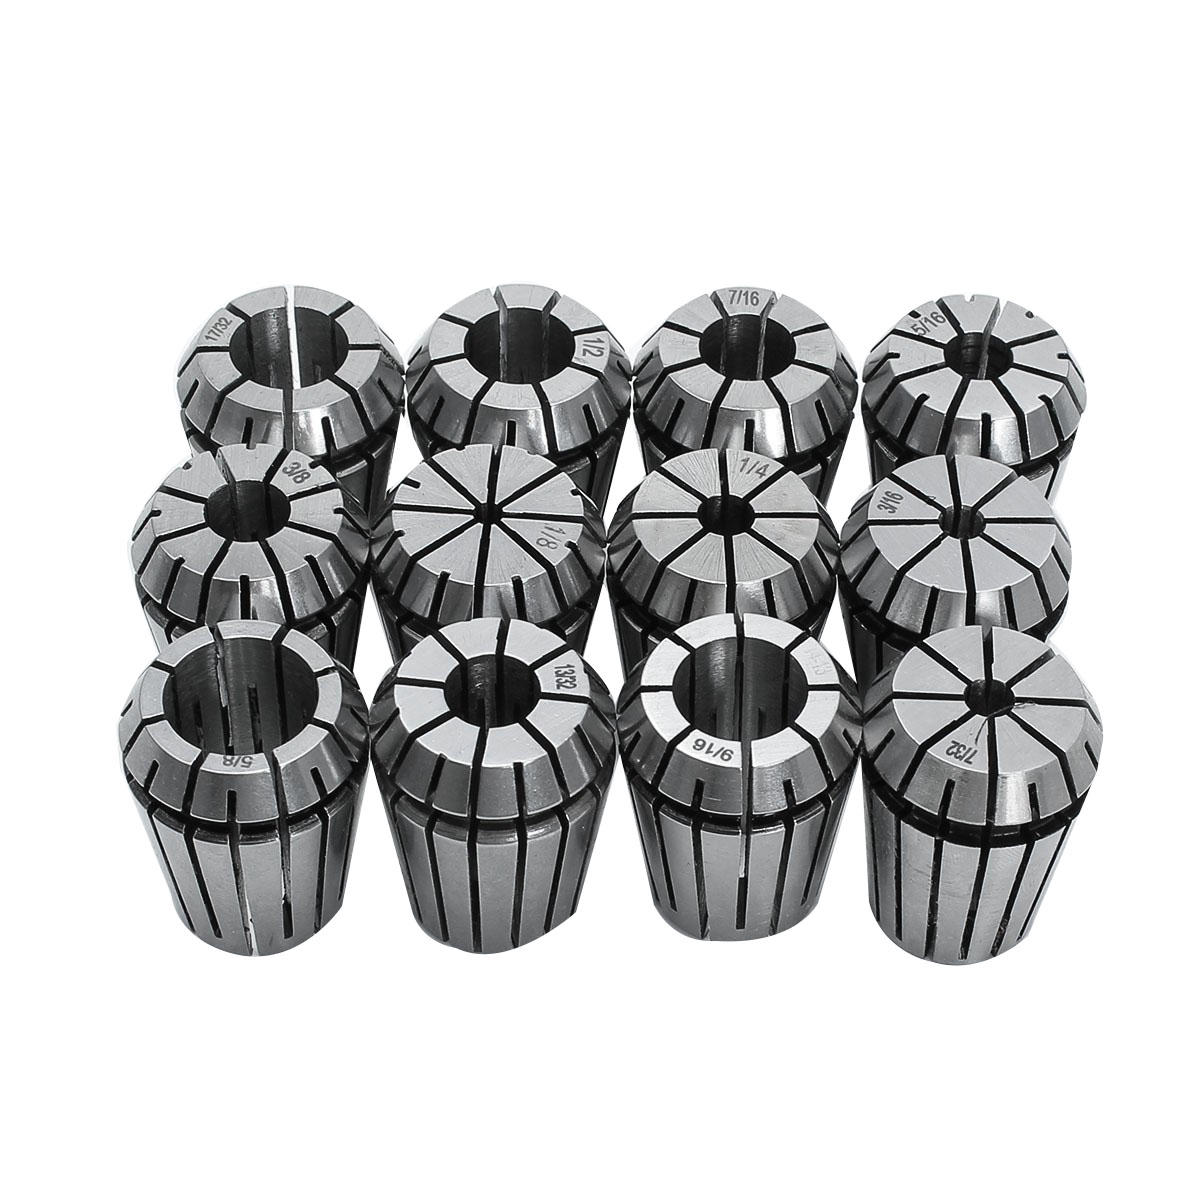 12pcs ER16 Spring Collet Set 1/32 to 3/8 Inch Chuck Collet For CNC Milling Lathe Tool